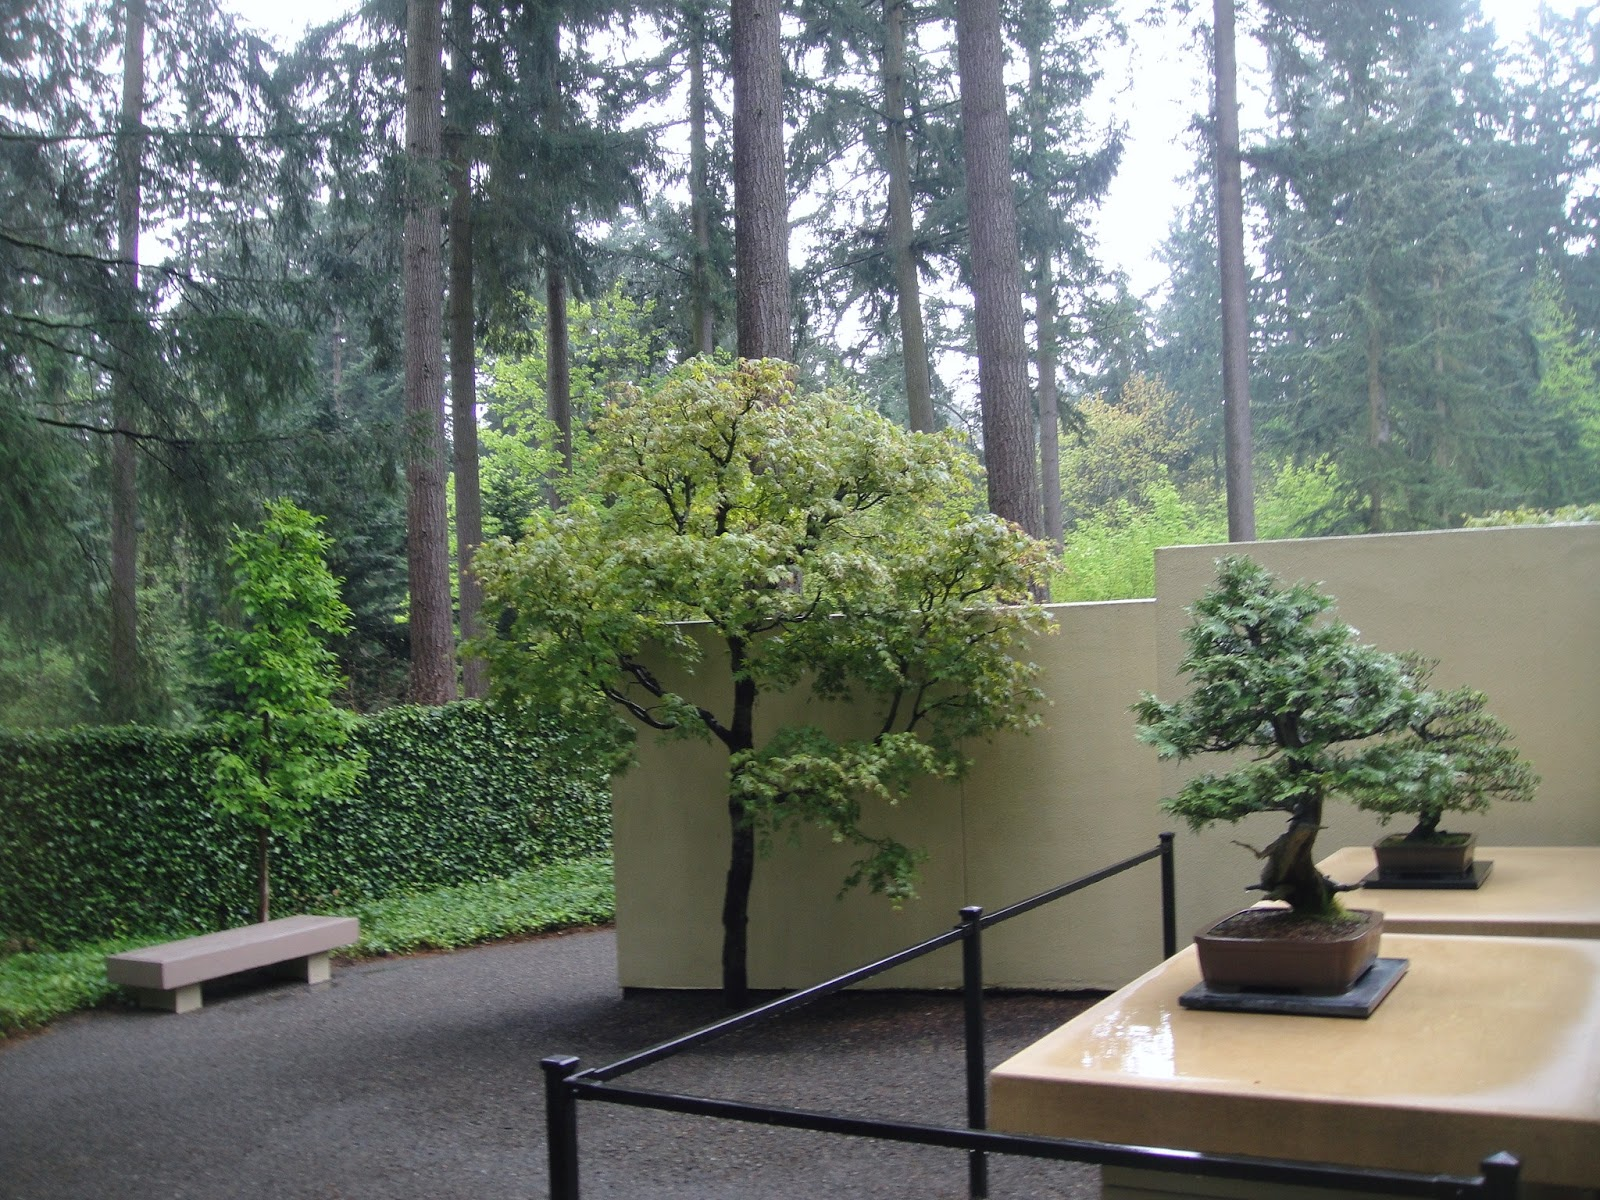 But Aesthetically Speaking, I Enjoyed This Bonsai Garden More Than The  Rhodies In This Location. The Garden (and Bonsai) Invokes Elegance; A Sense  Of Museum ...